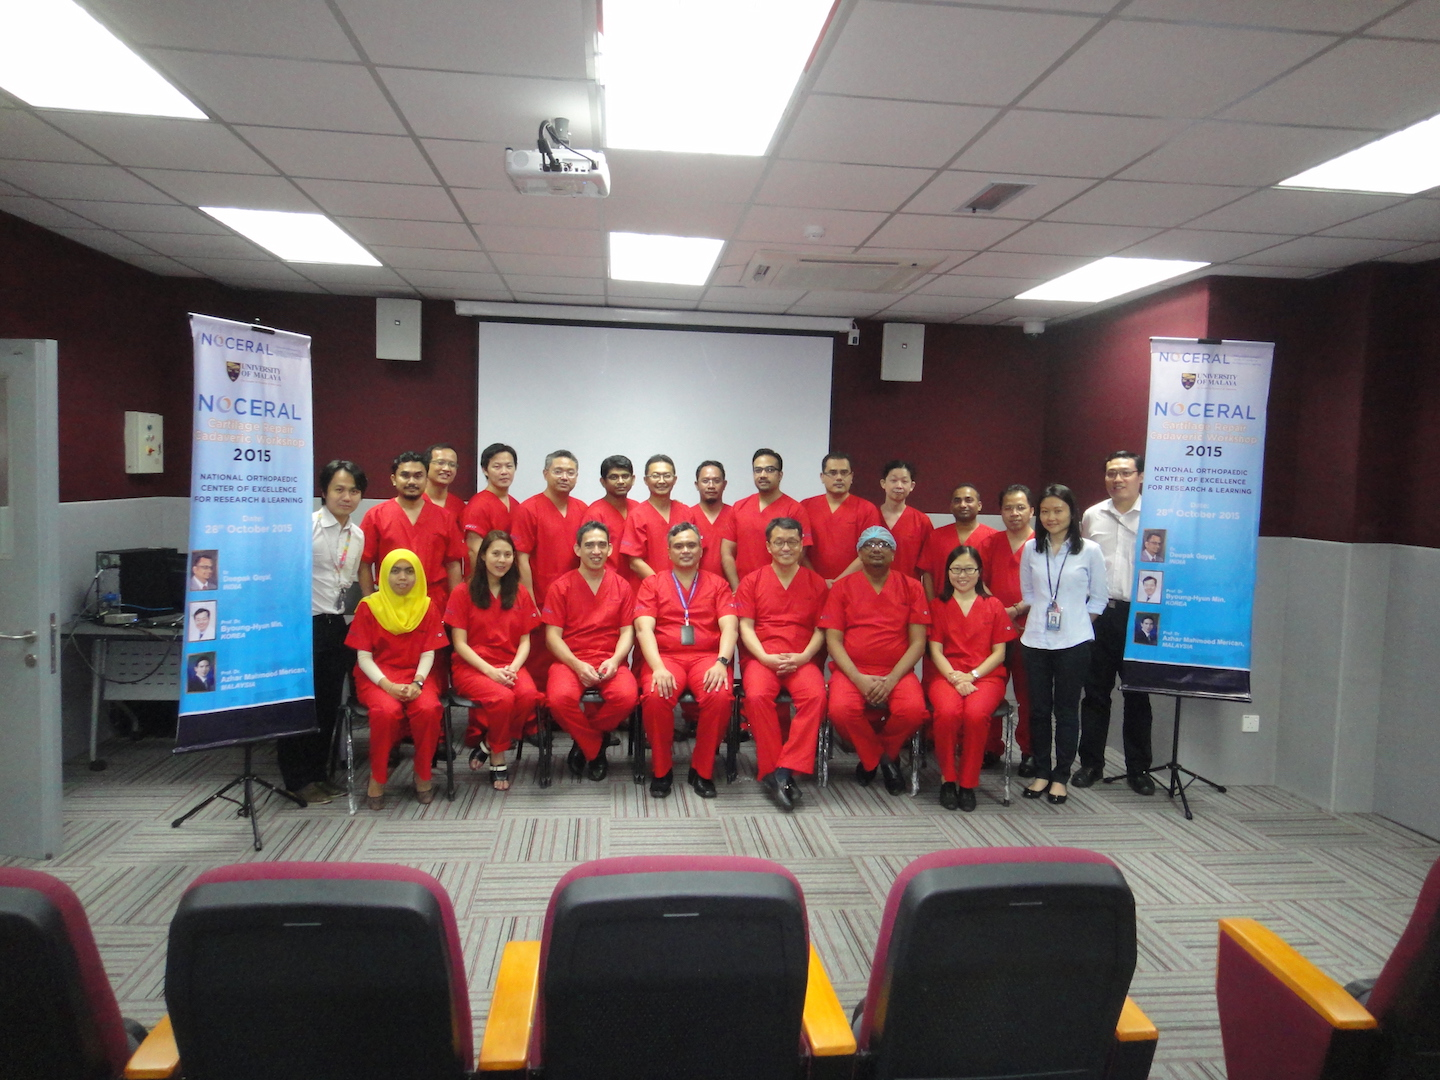 ACRS Cadaveric Workshop 2015, NOCERAL, KL, the team